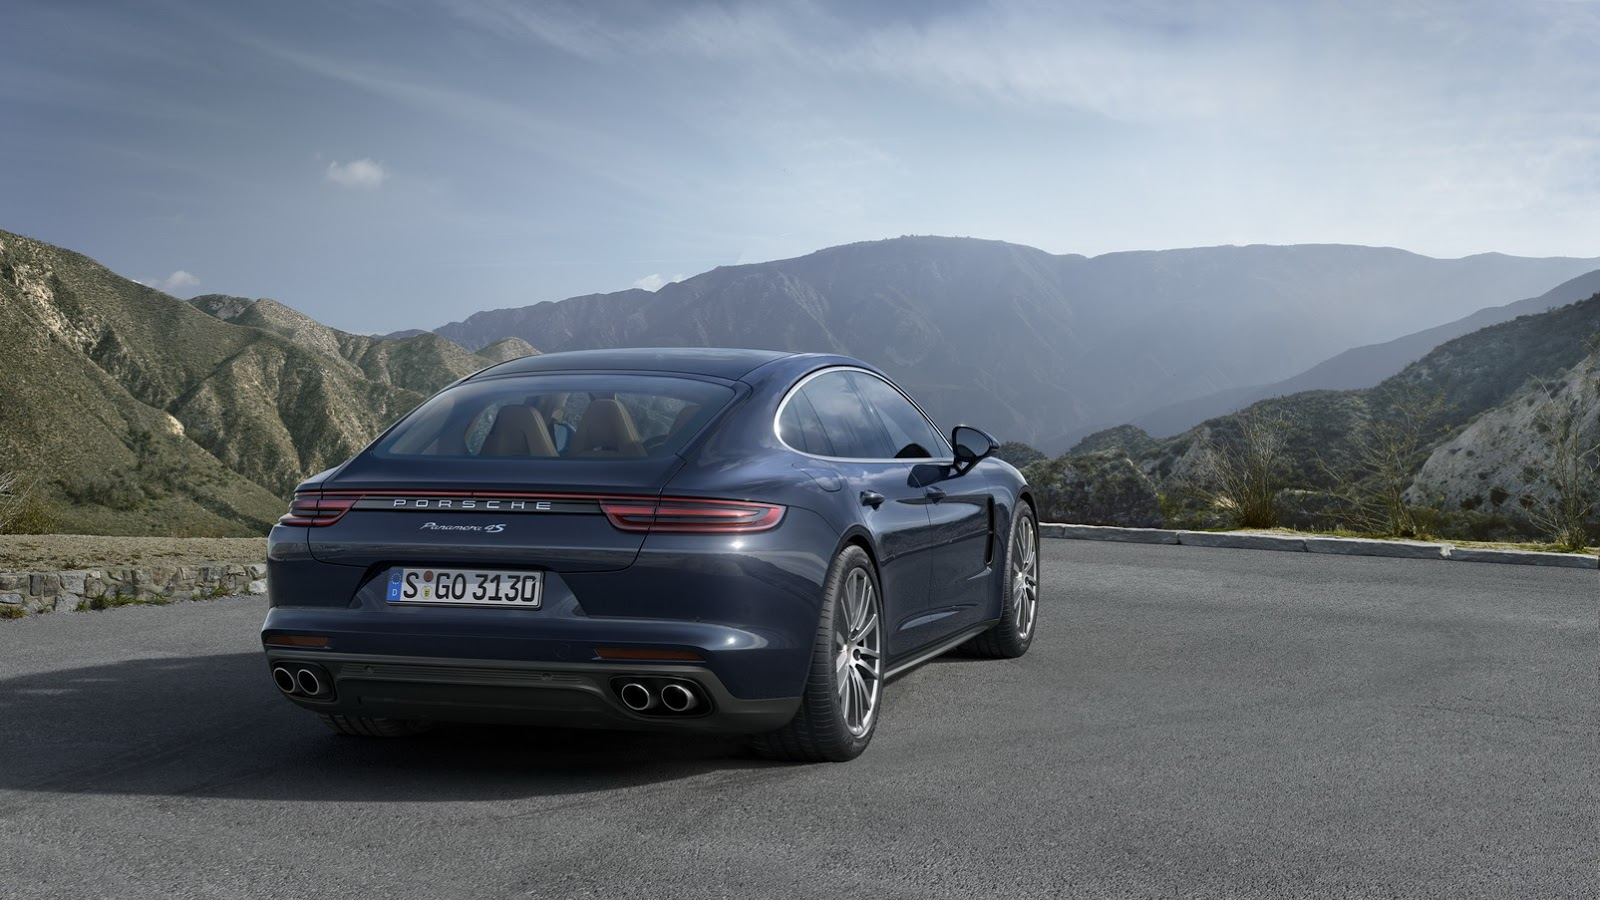 2019 Porsche Panamera Diesel photo - 2